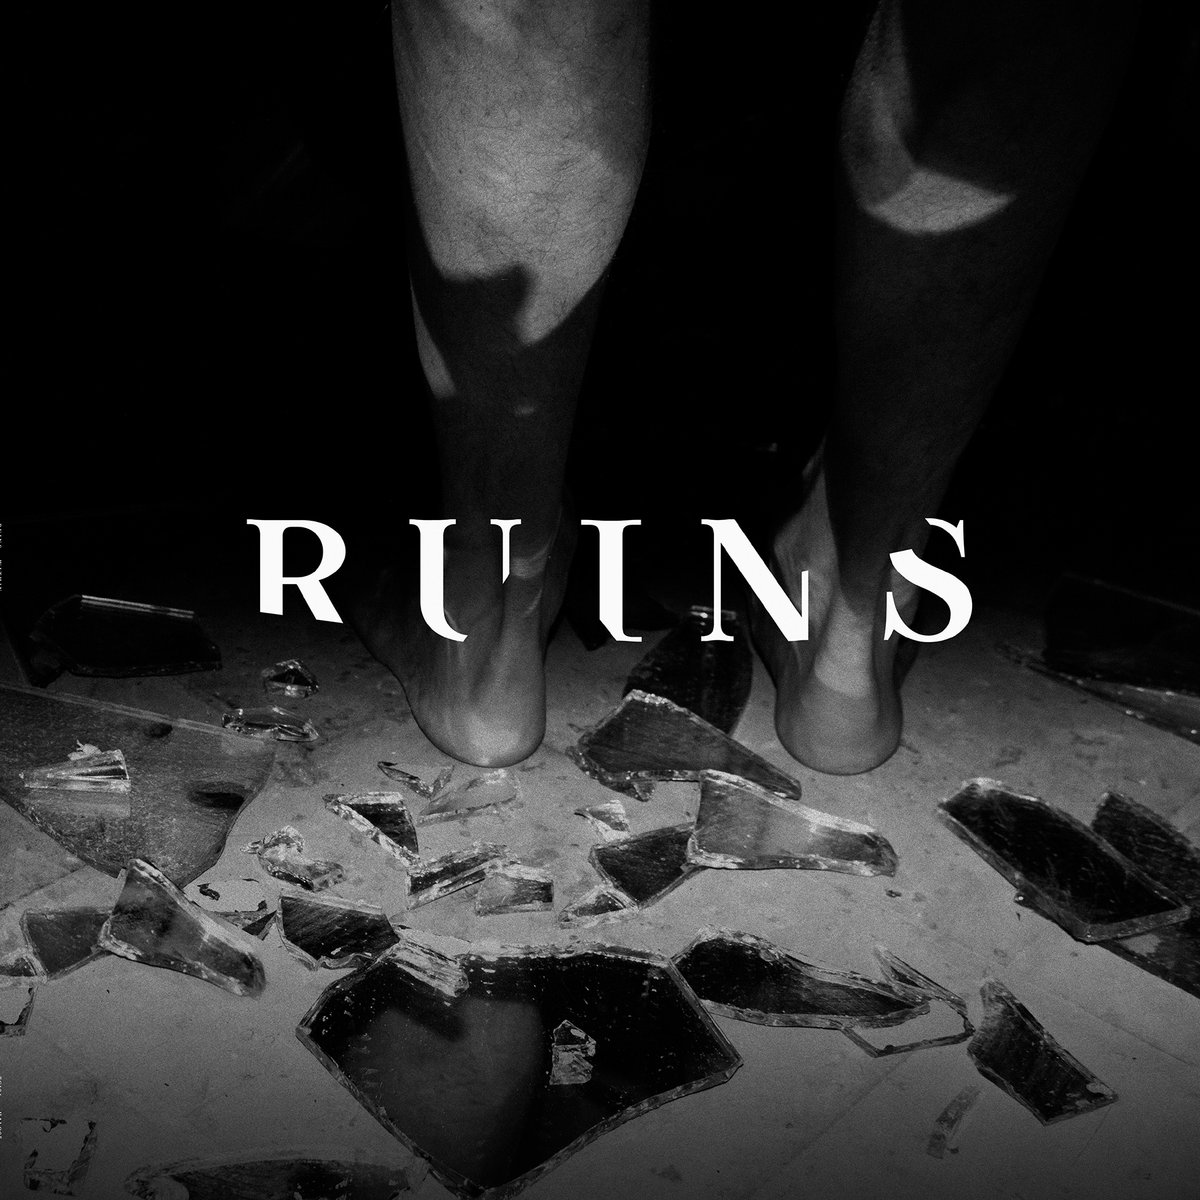 Ruins - The Hatch @ 'Within' album (bielefeld, metal)